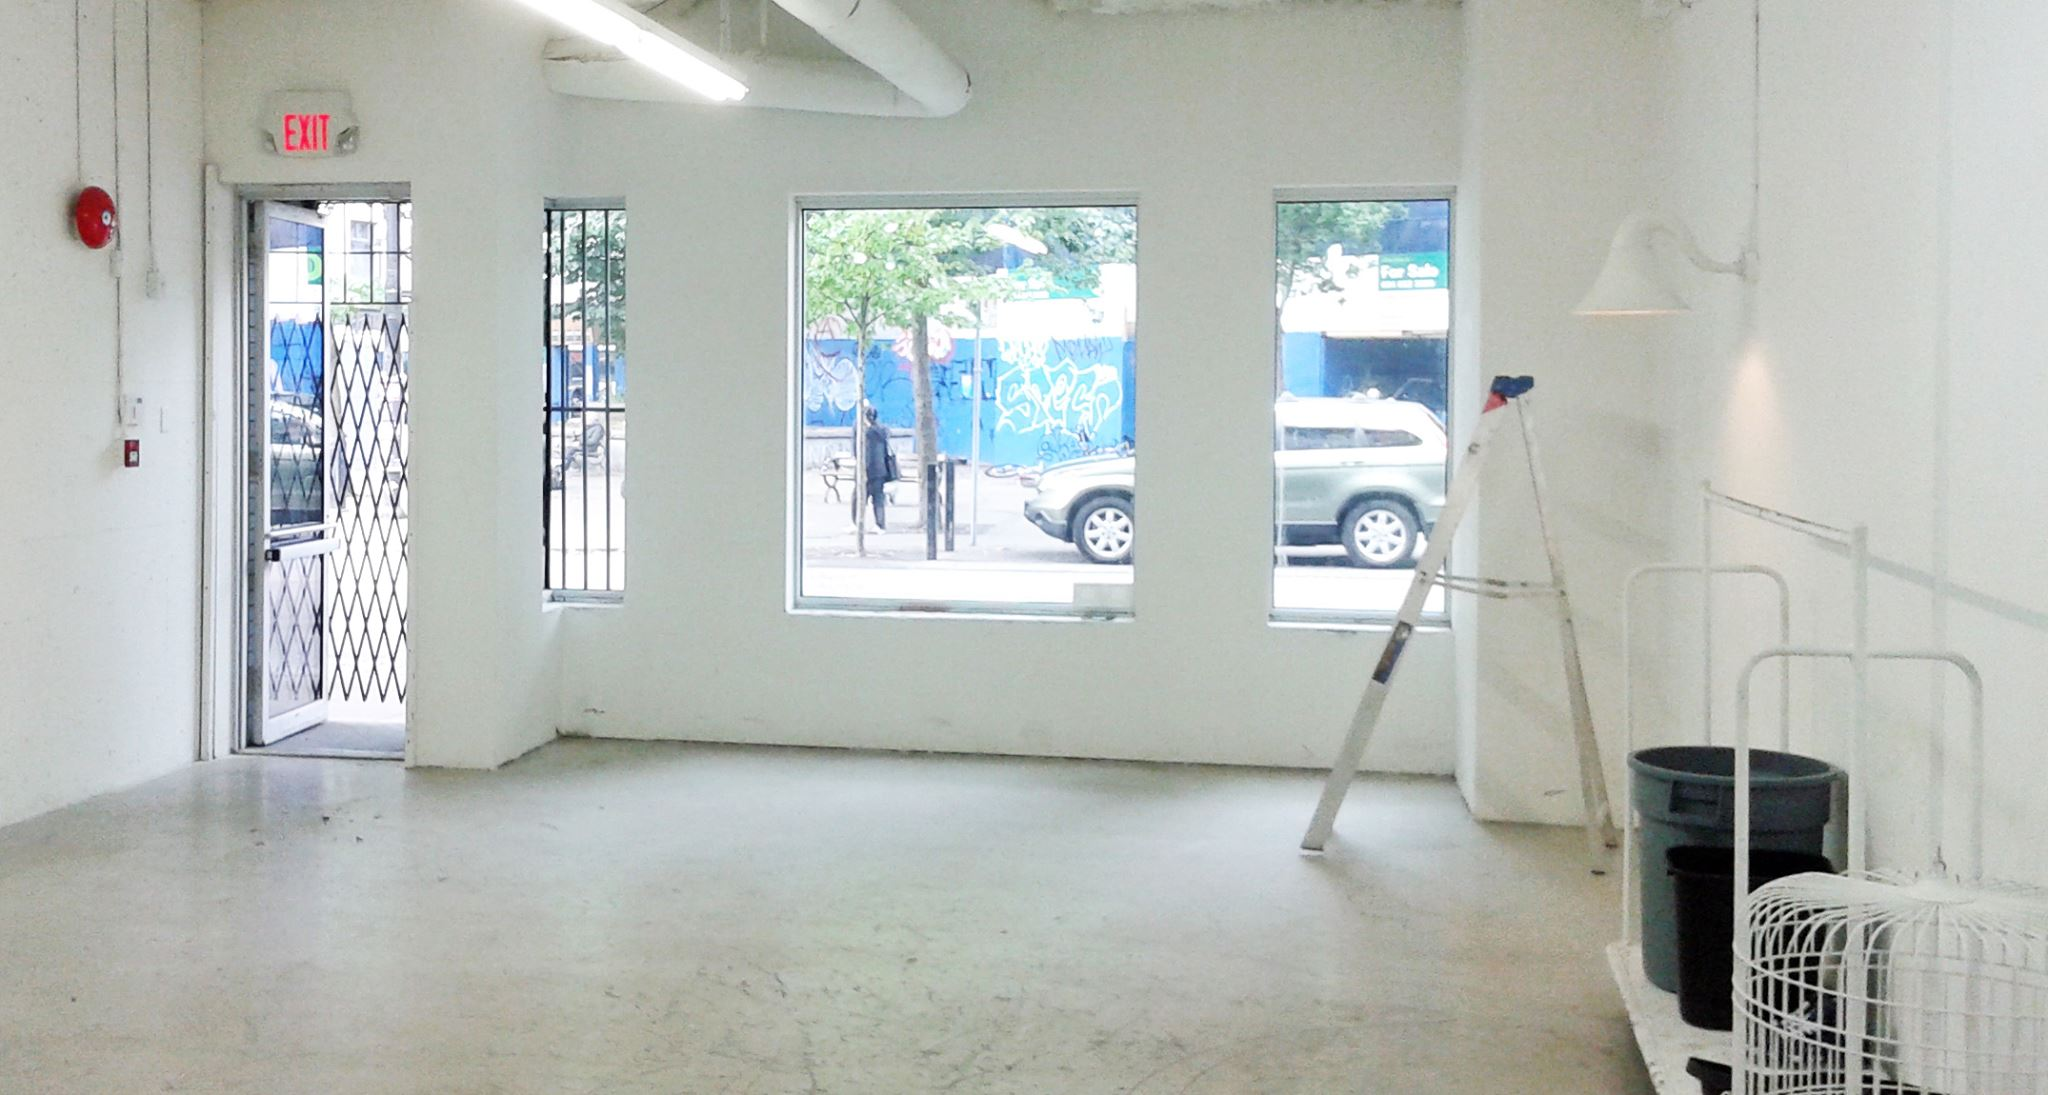 Inside the yet-to-be-finished space. Photo: Helen Siwak